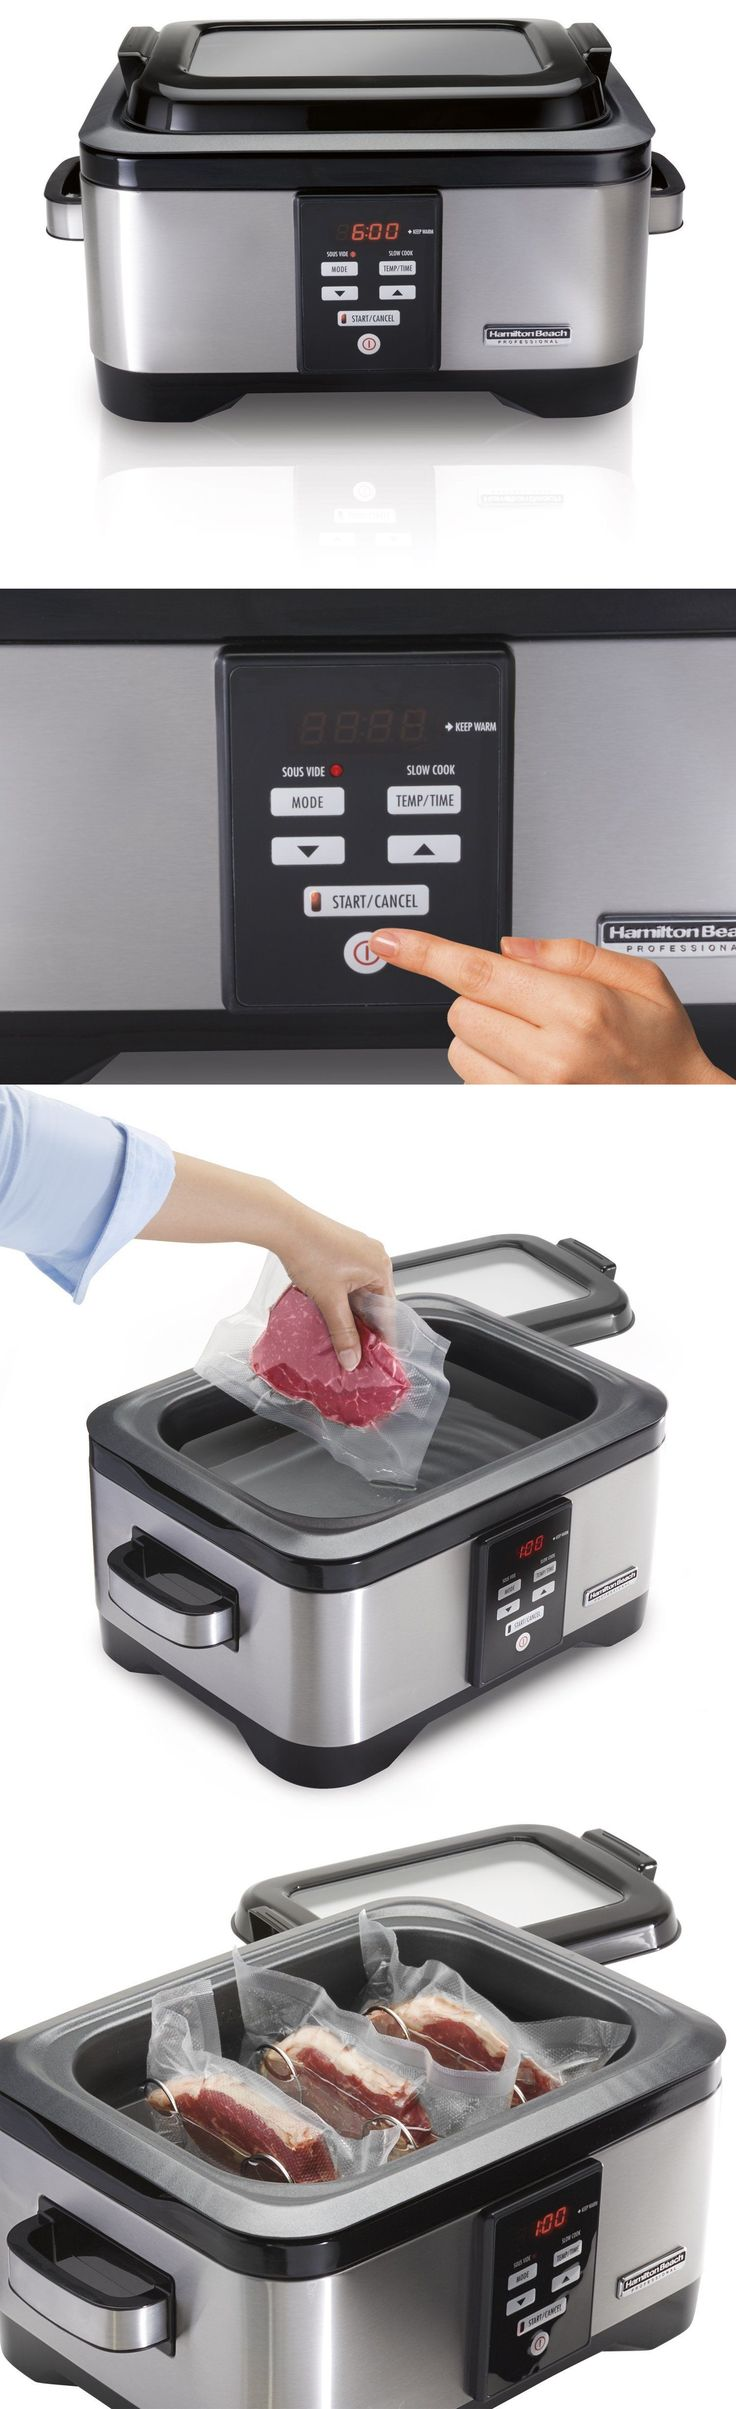 Small Kitchen Appliances: Hamilton Beach 33970 Professional Sous Vide Water Oven And Slow Cooker 6 Quart BUY IT NOW ONLY: $119.89